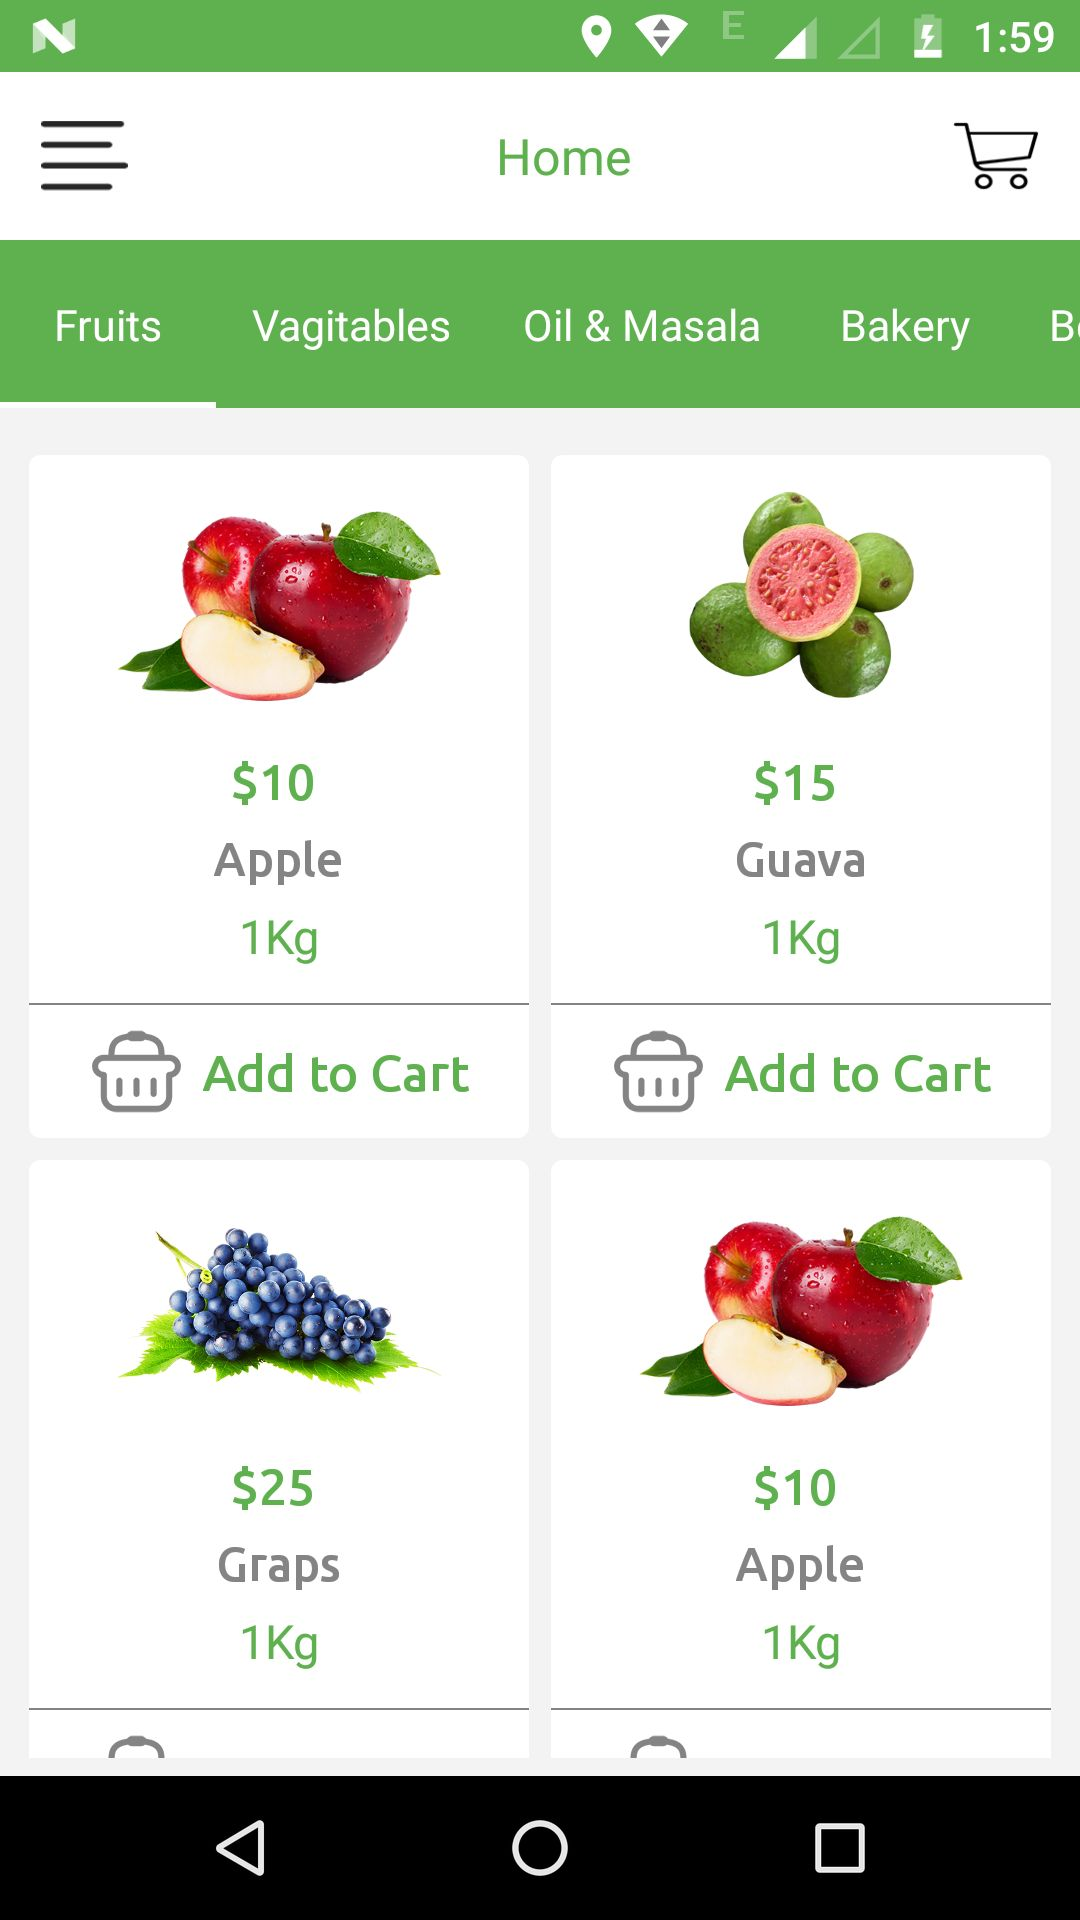 Grocery App UI Template Screenshot 16